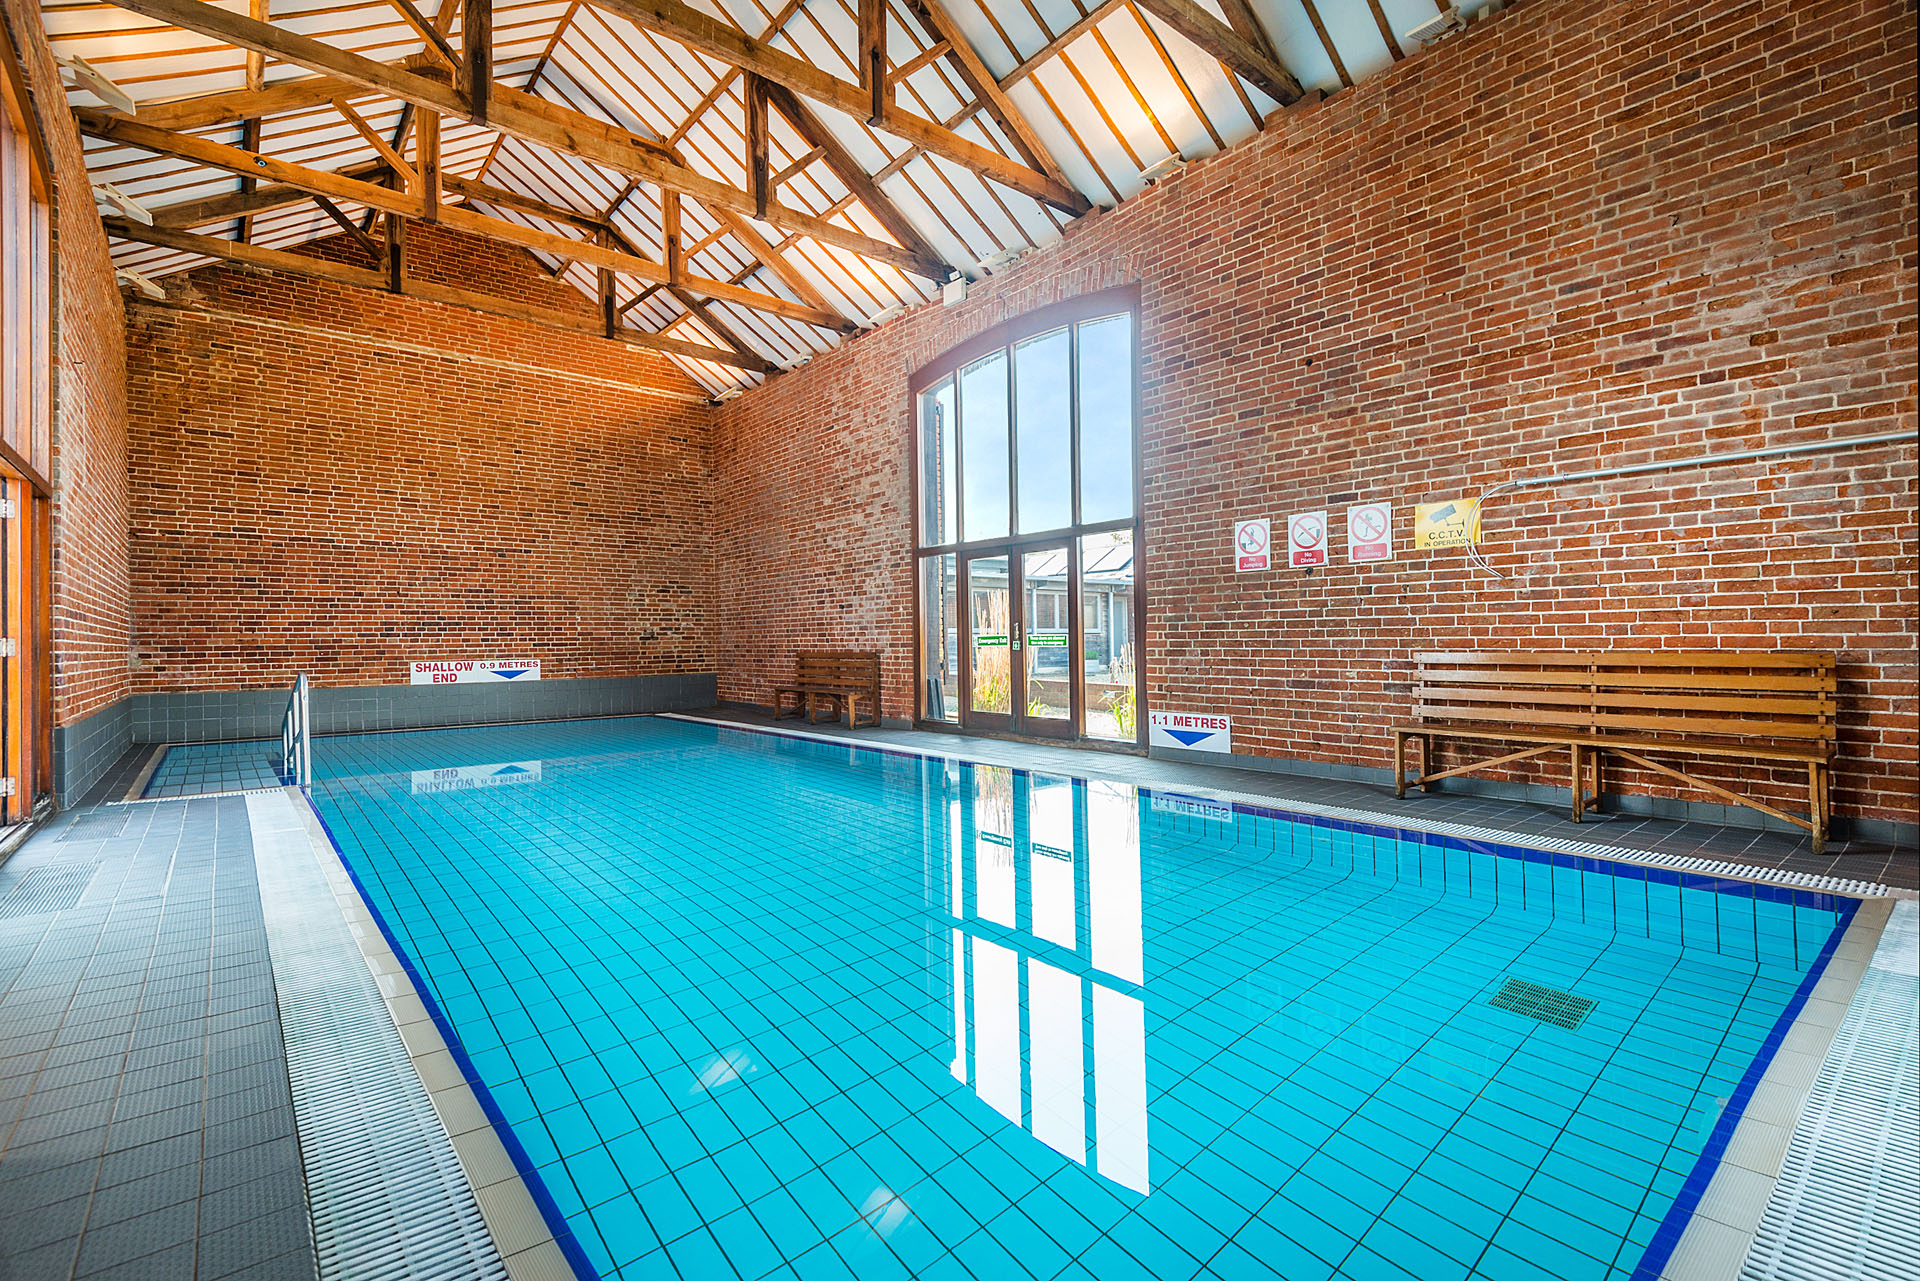 self catering luxury holiday cottages with heated indoor swimming pool